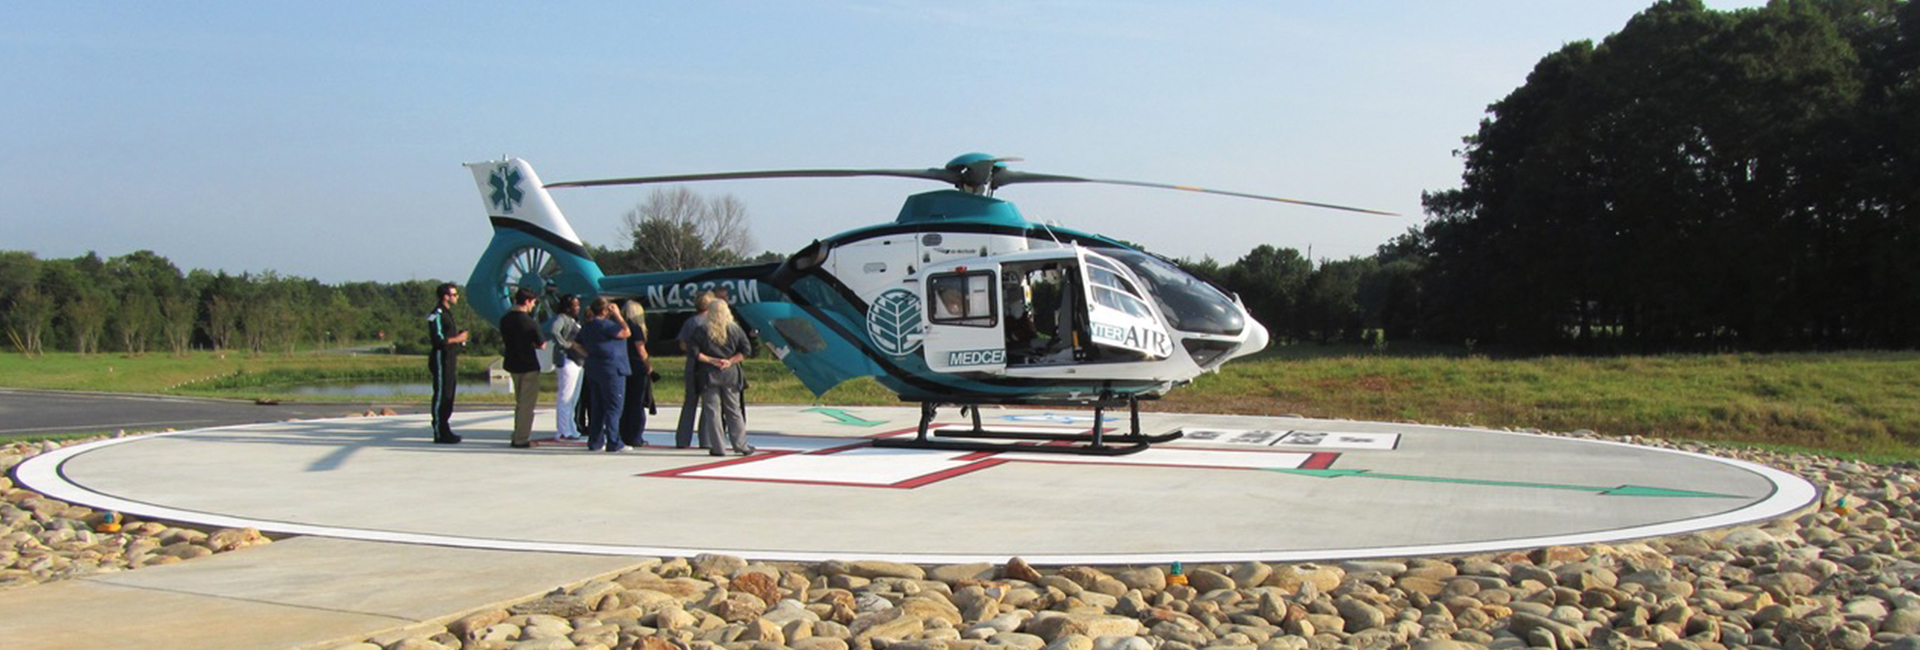 HeliExperts International Announces Nation's First Heliport Safety and Certification Program